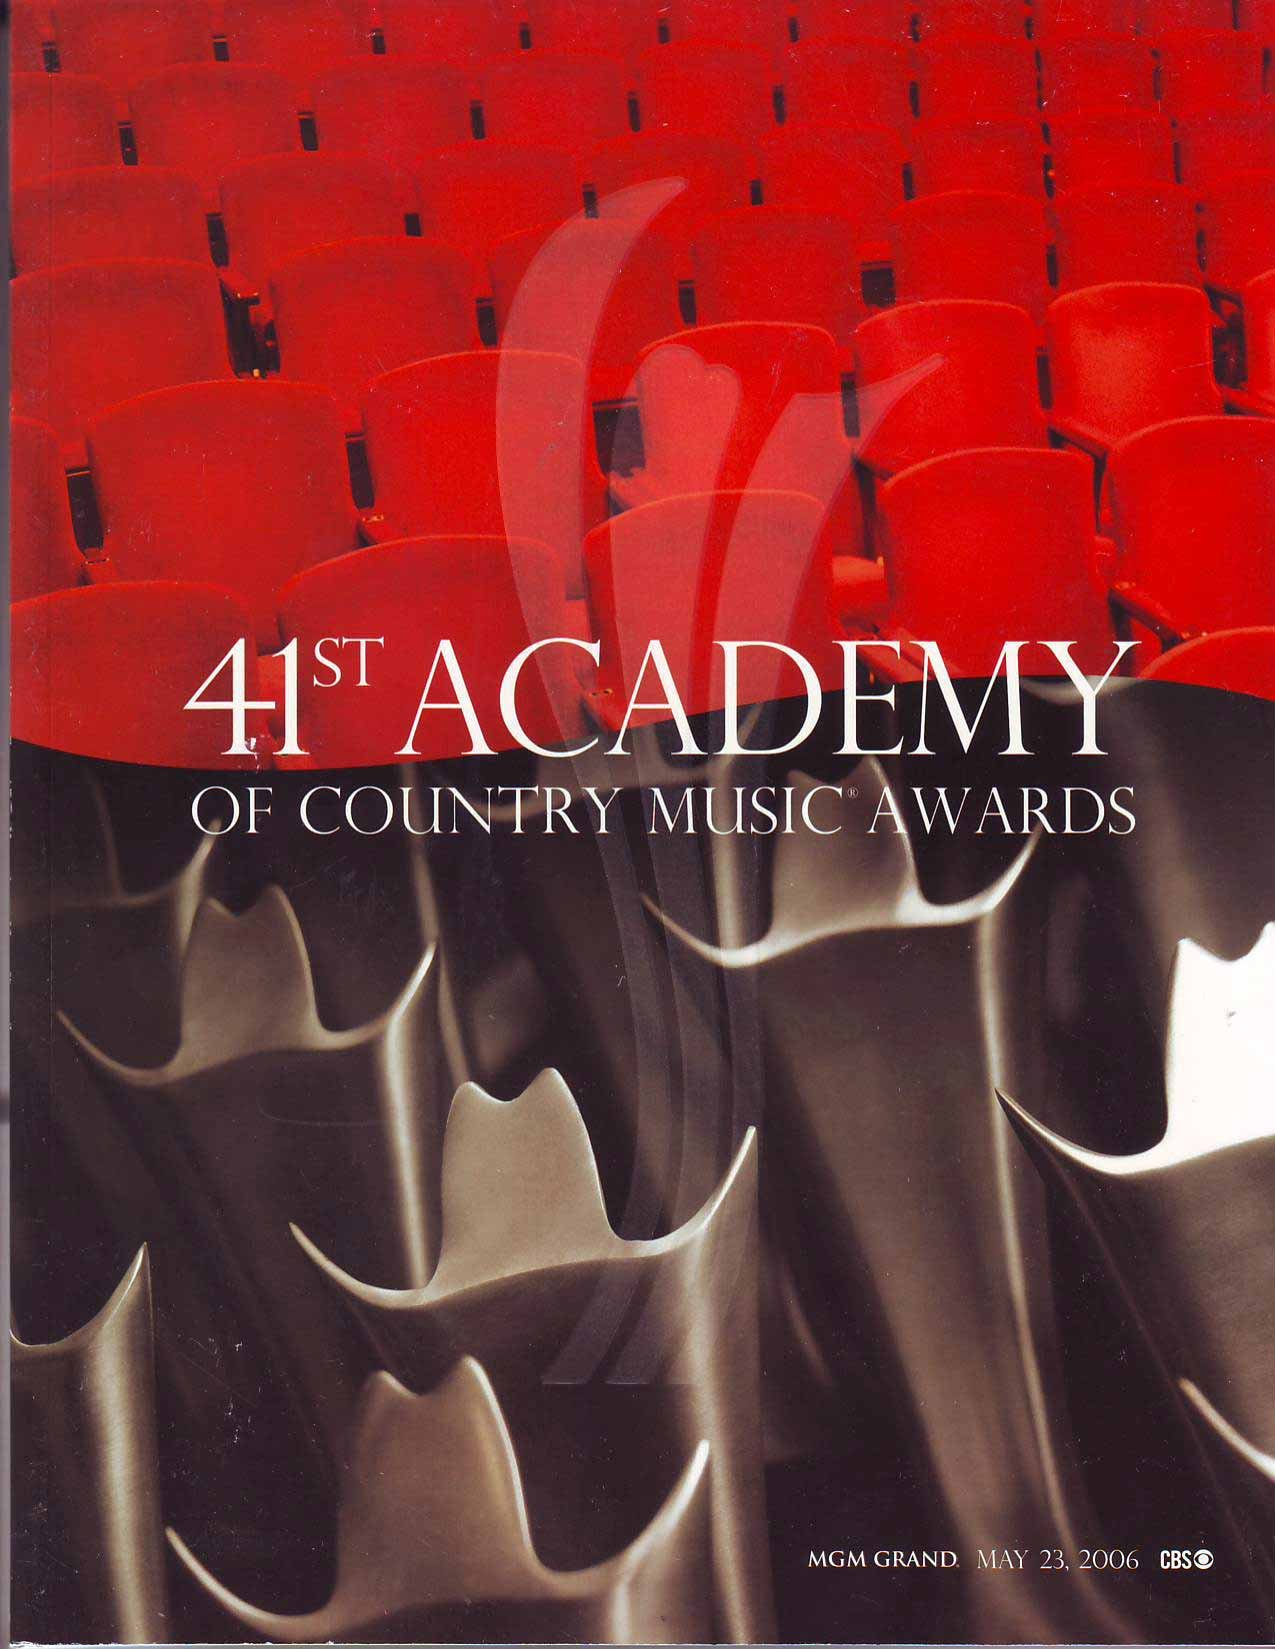 41st Academy of Country of Country Music Award: MGM Grand May 23, 2006 ebook